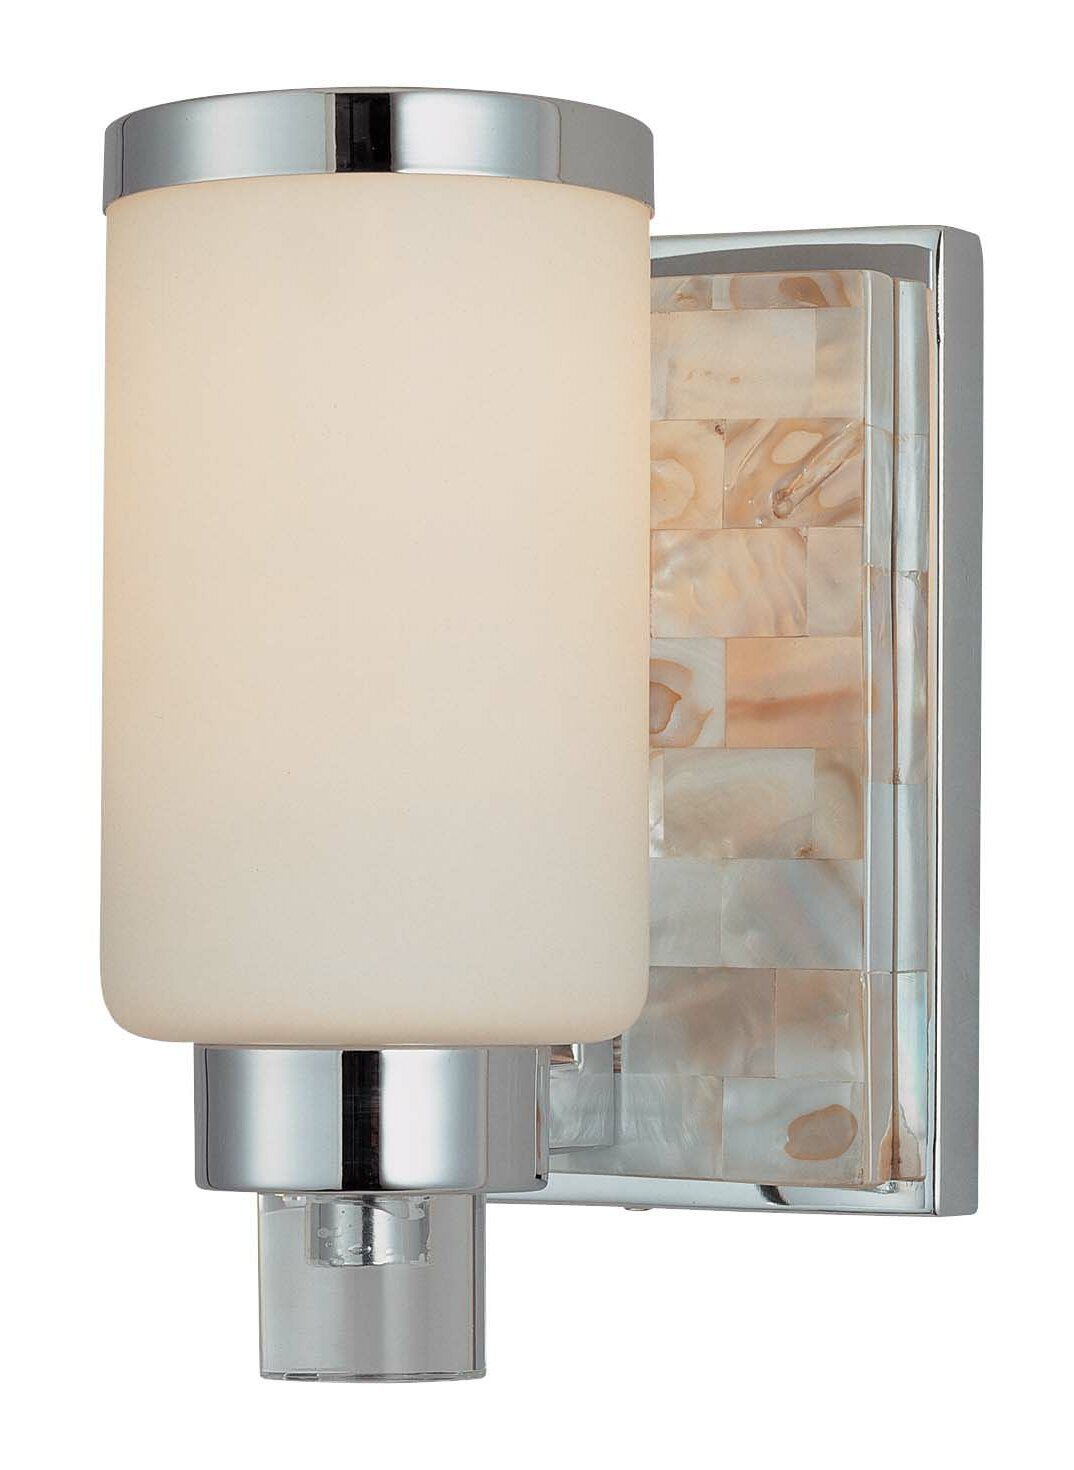 Non Hardwired Wall Sconce - Pictures Of Aperture And Pictures On, The Most Hardwired Wall Sconce ...